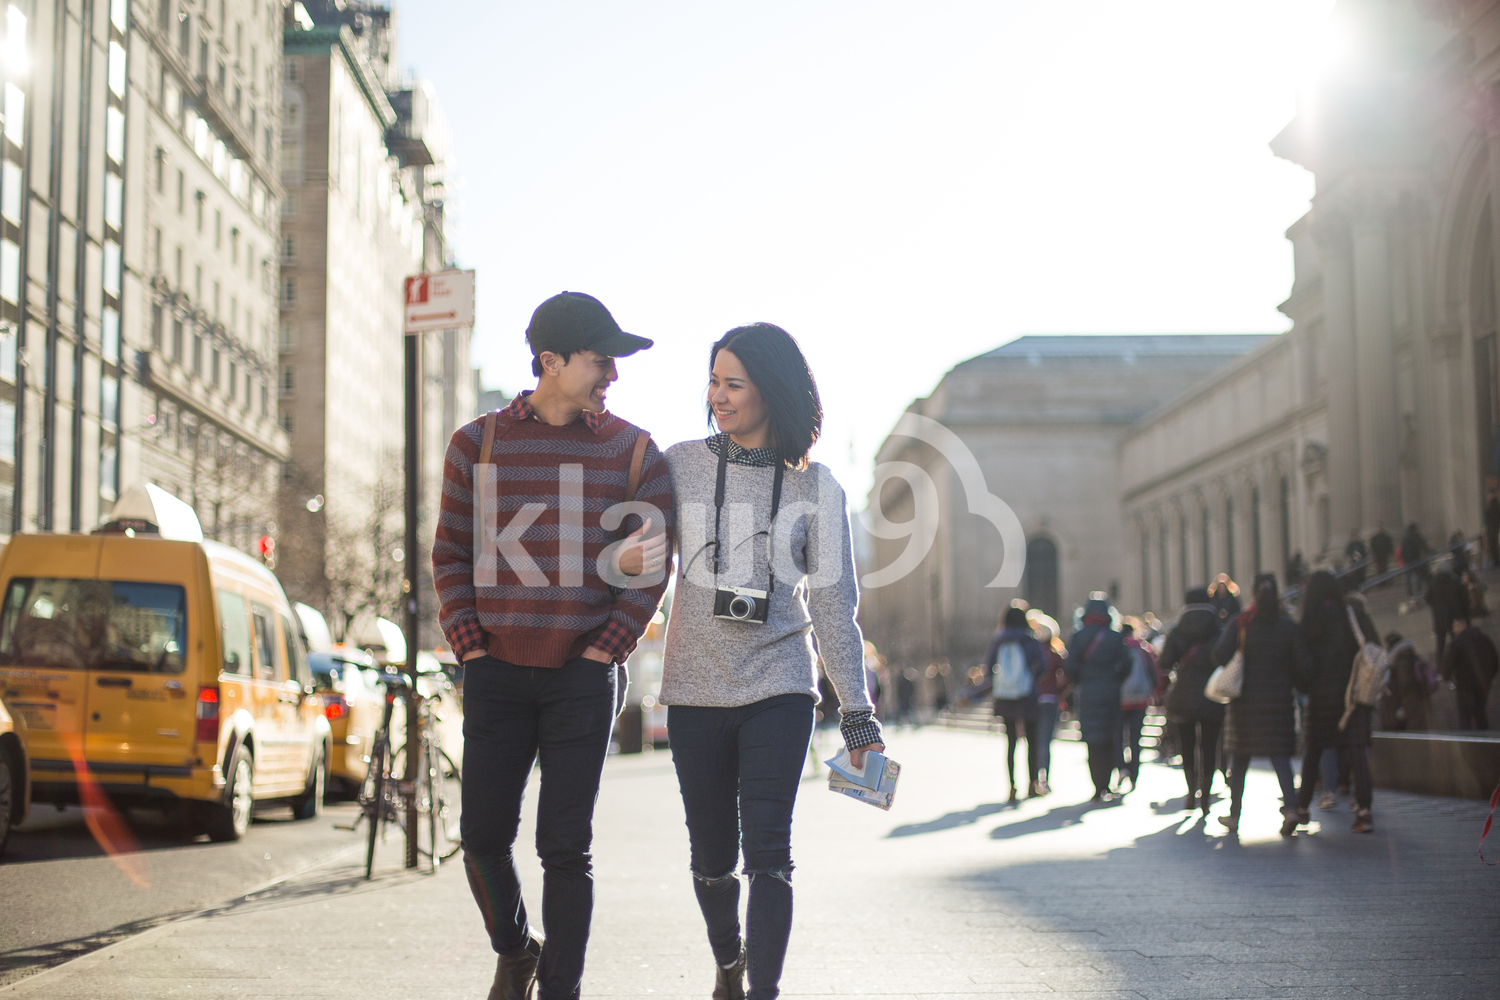 Attractive tourist couple being playful while walking together in front of The Metropolitan Museum of Art